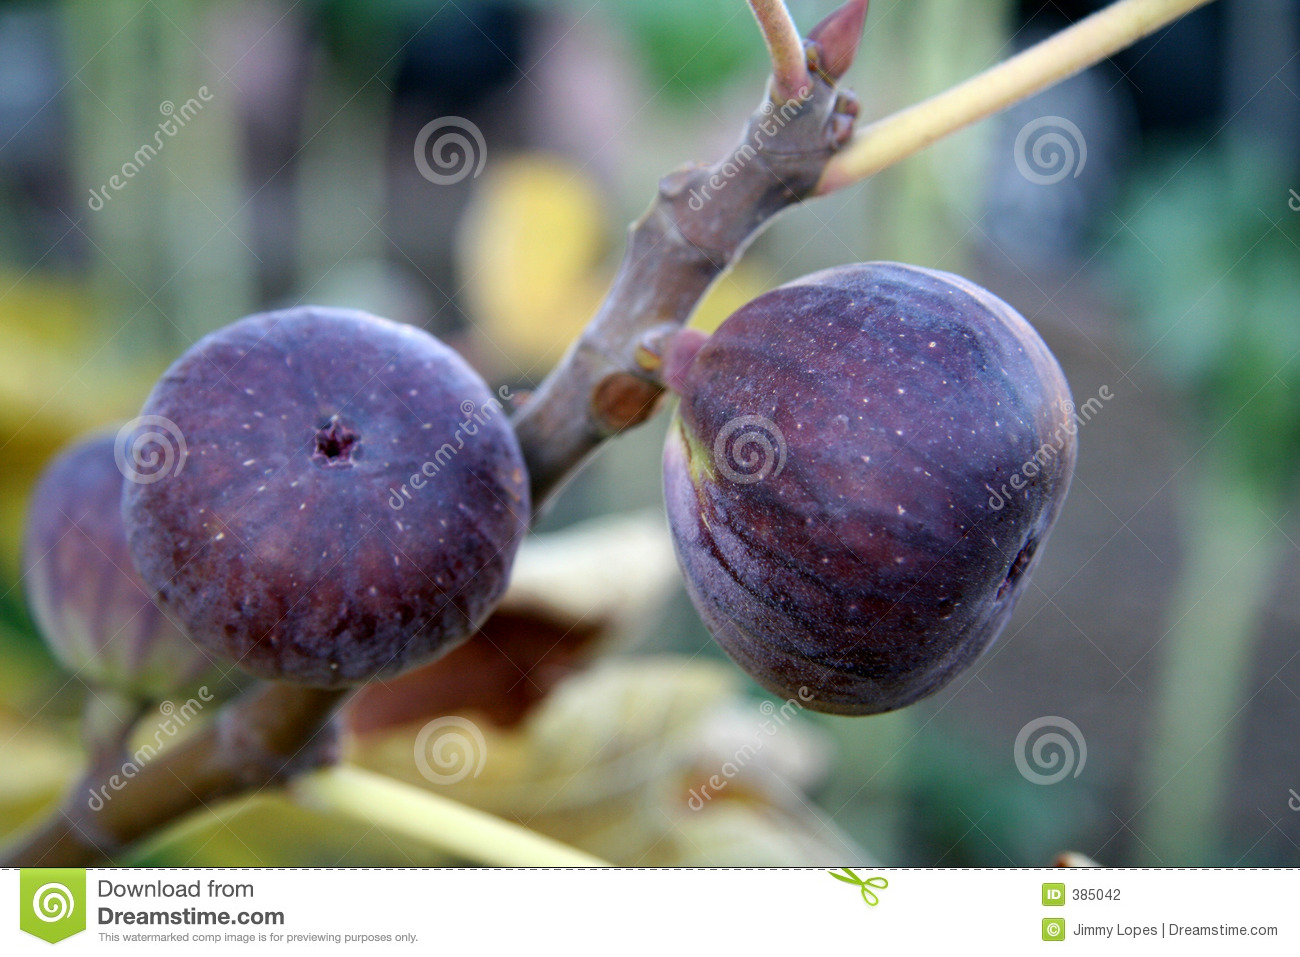 Figs on the Vine